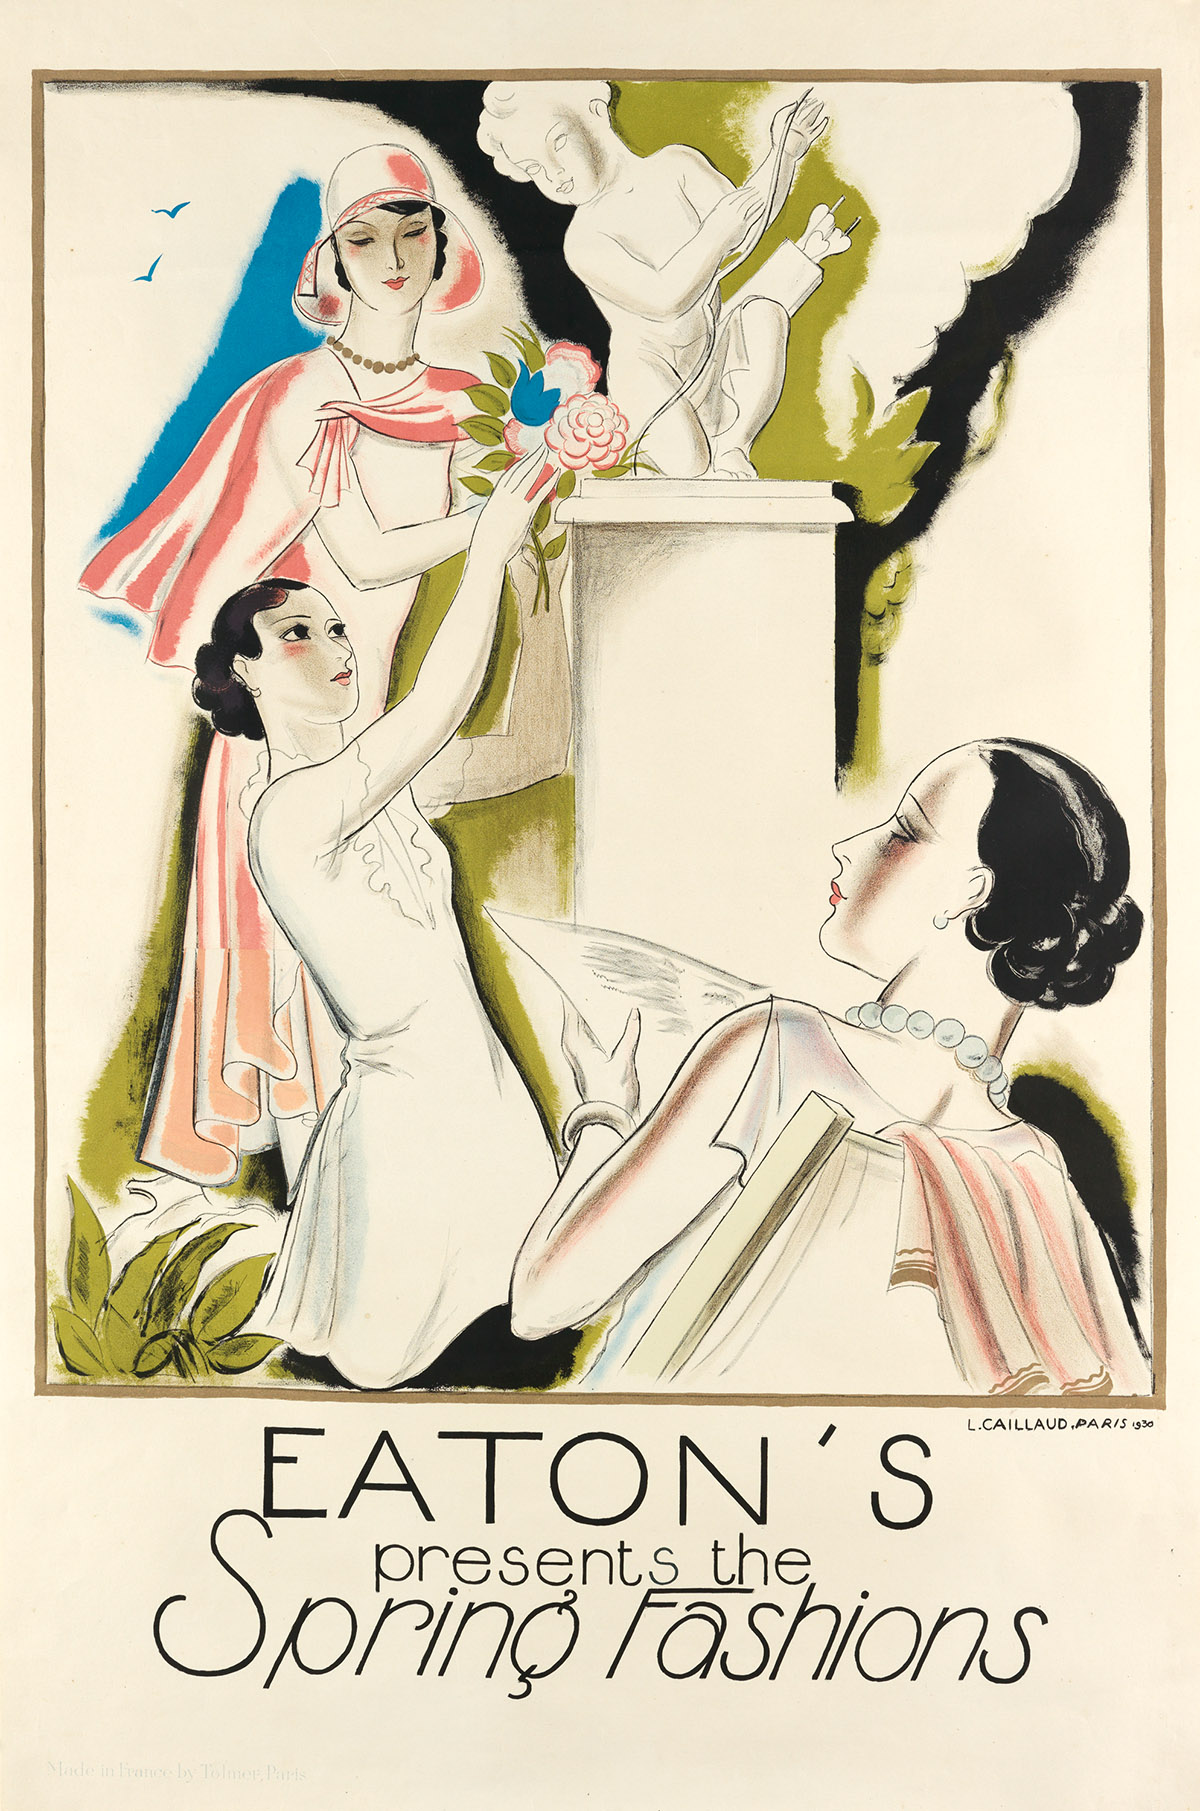 LOUIS CAILLAUD (1894-1960). EATONS PRESENTS THE SPRING FASHIONS. 1930. 47x30 inches, 119x78 cm. Tolmer, Paris.